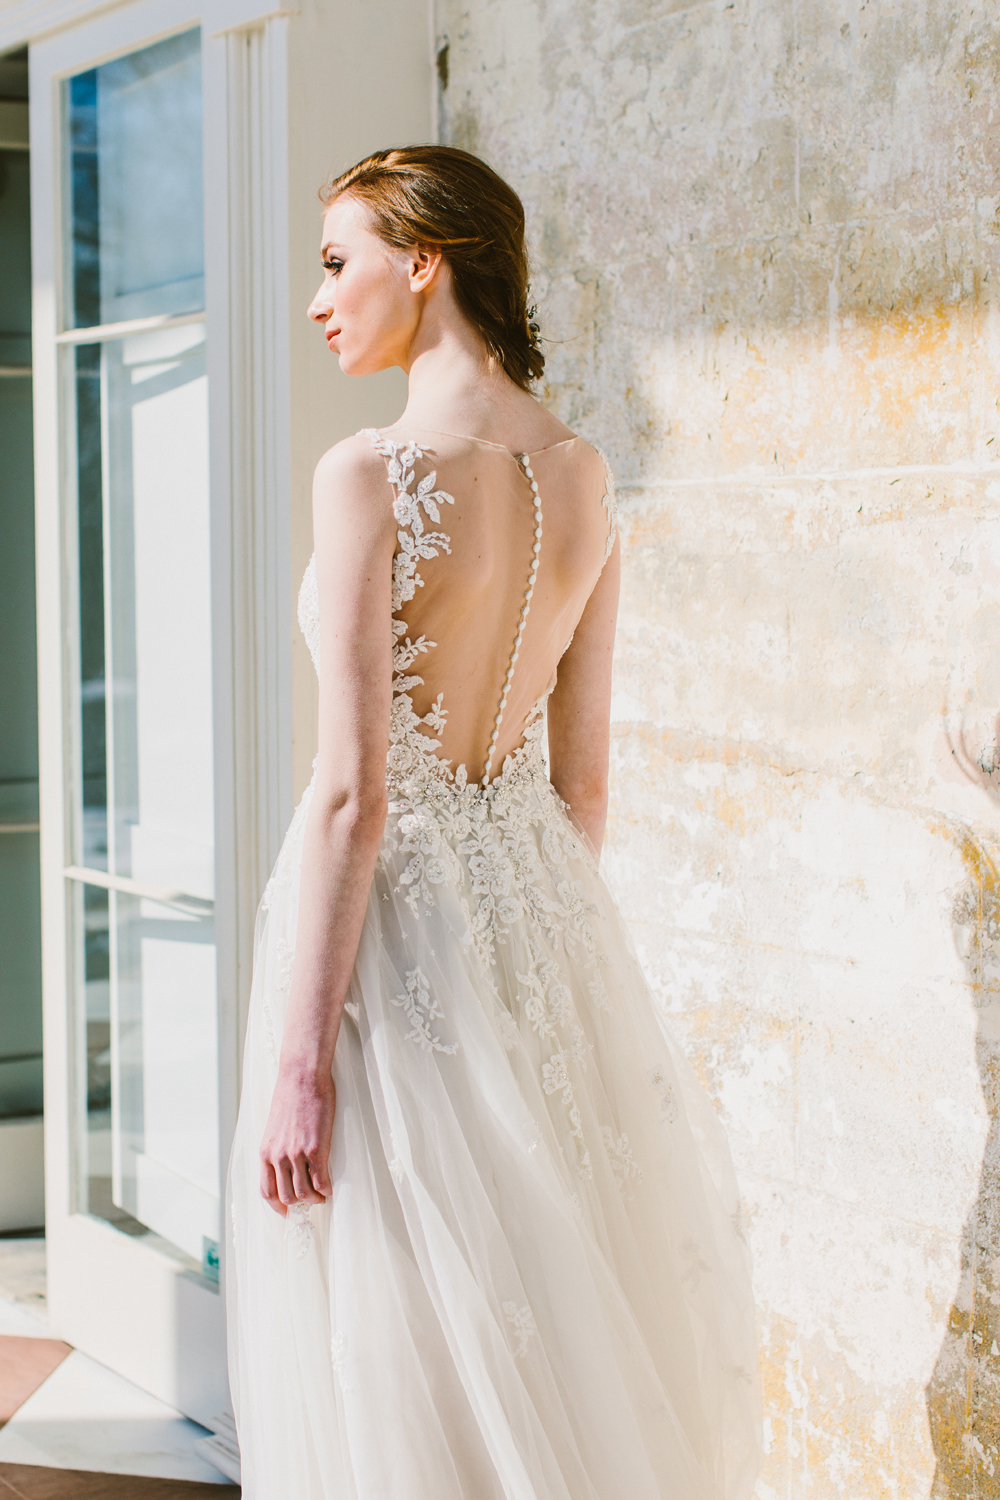 Modern Fairytale wedding gowns with Maggie Sottero - https://ruffledblog.com/modern-fairytale-gowns-maggie-sottero-designs Redfield Photography